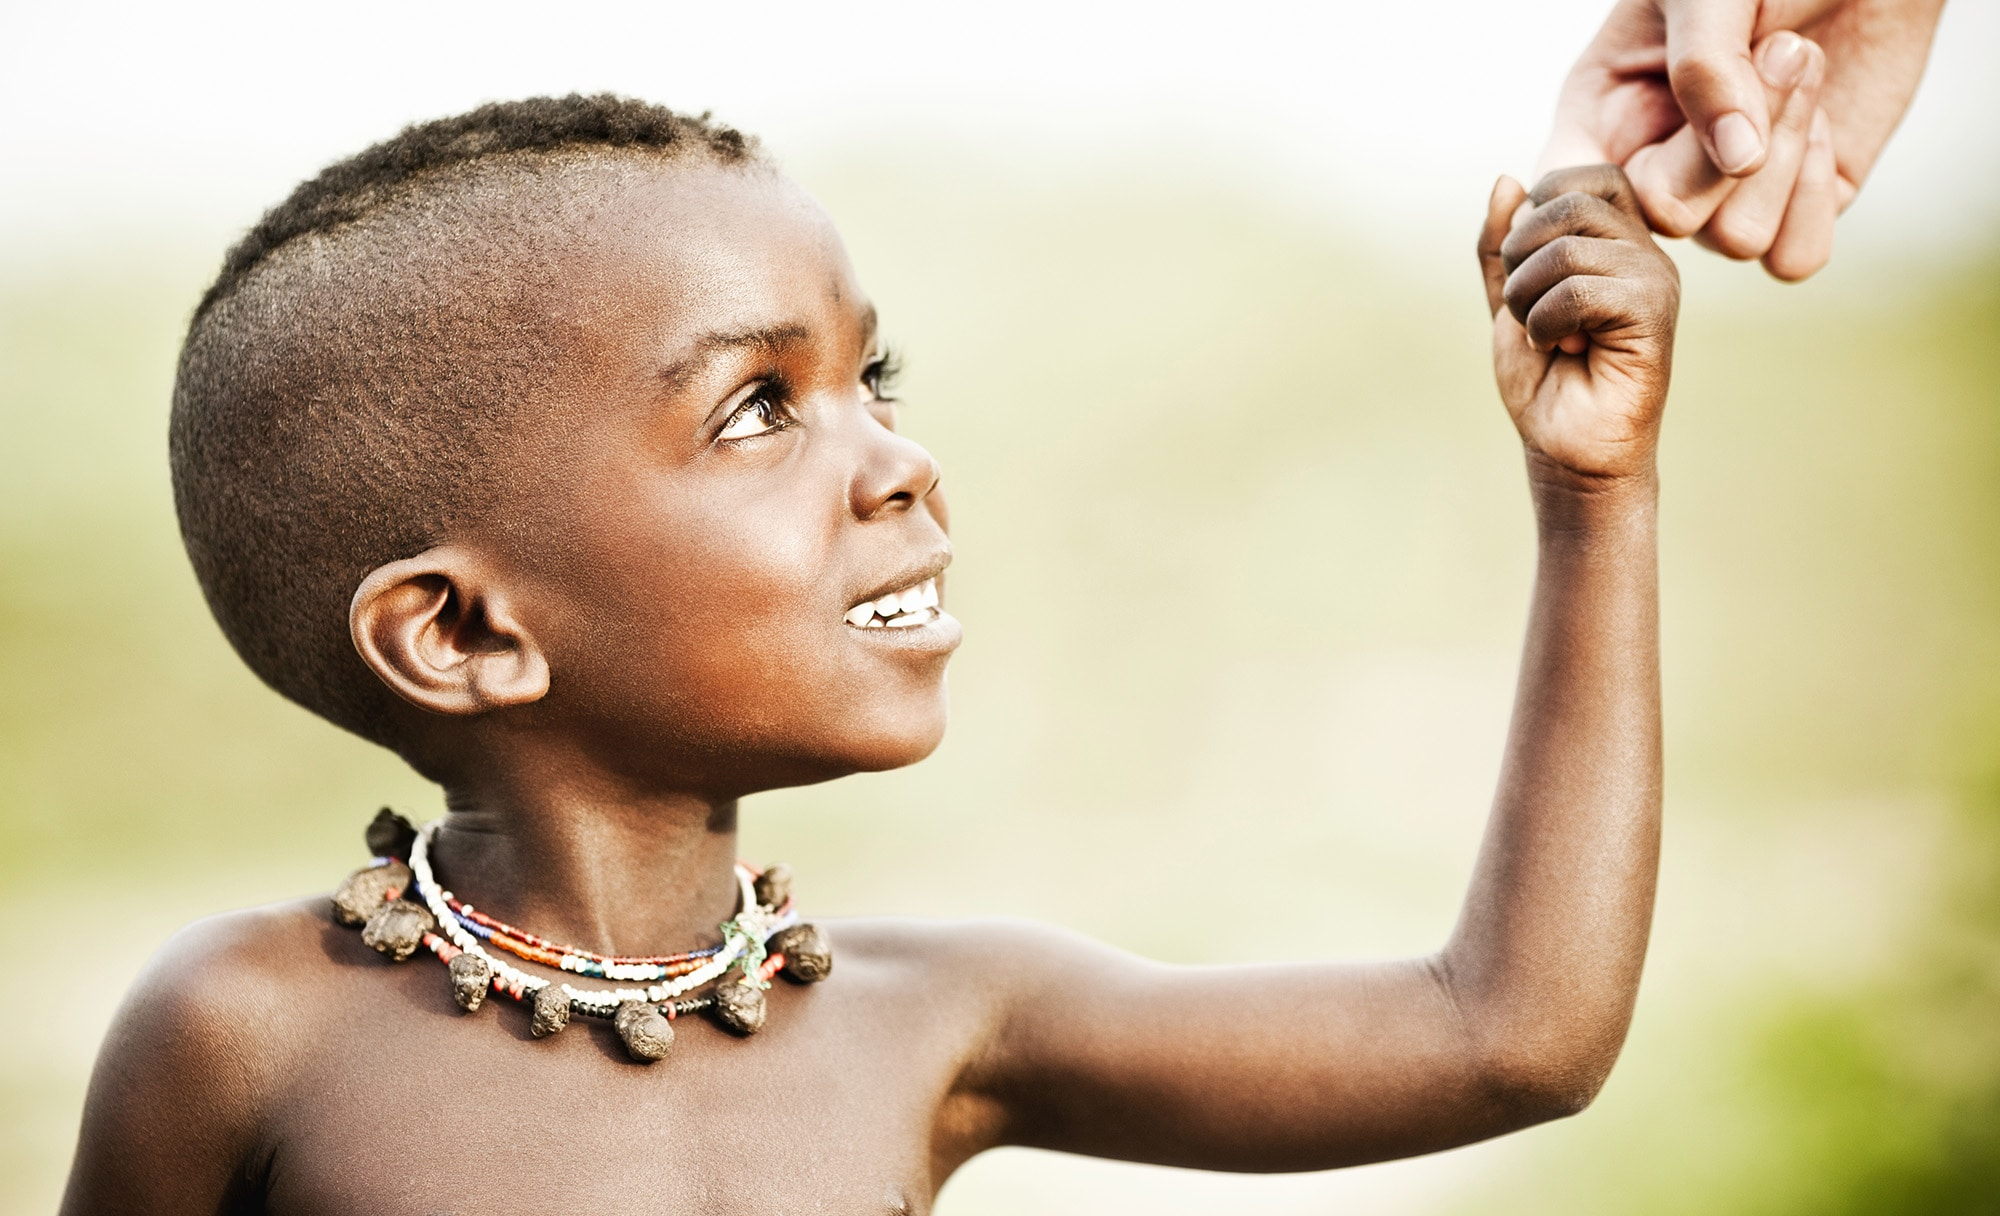 Small African child